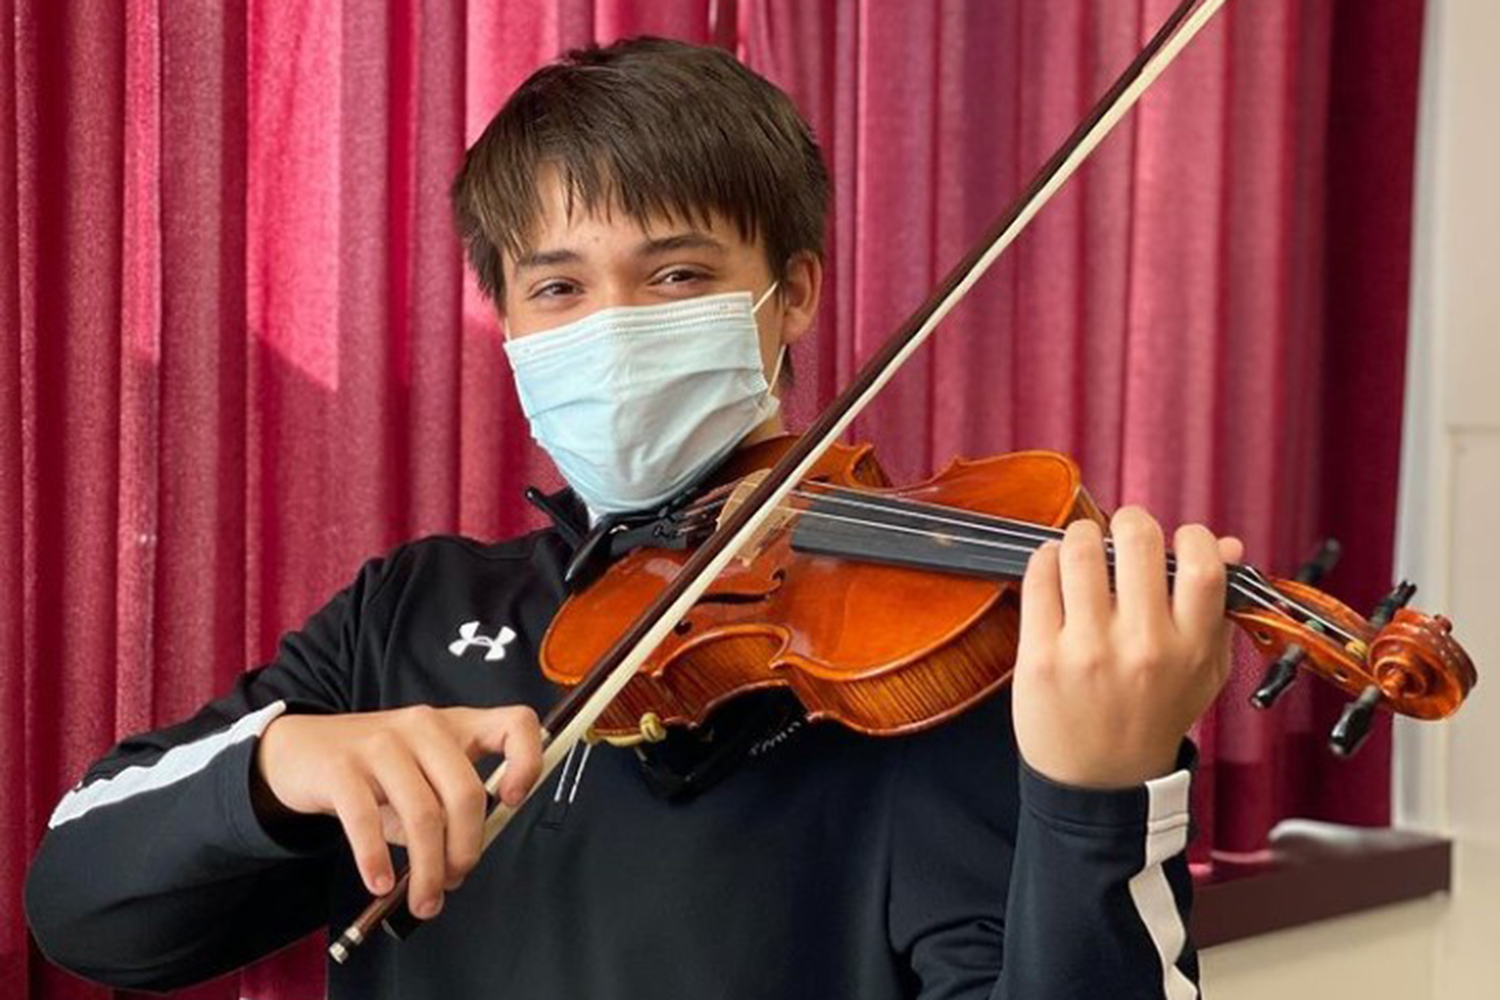 Junior Emmett Concannon is a  violinist who has traveled throughout Europe, played in a mariachi band, and played in an orchestra.